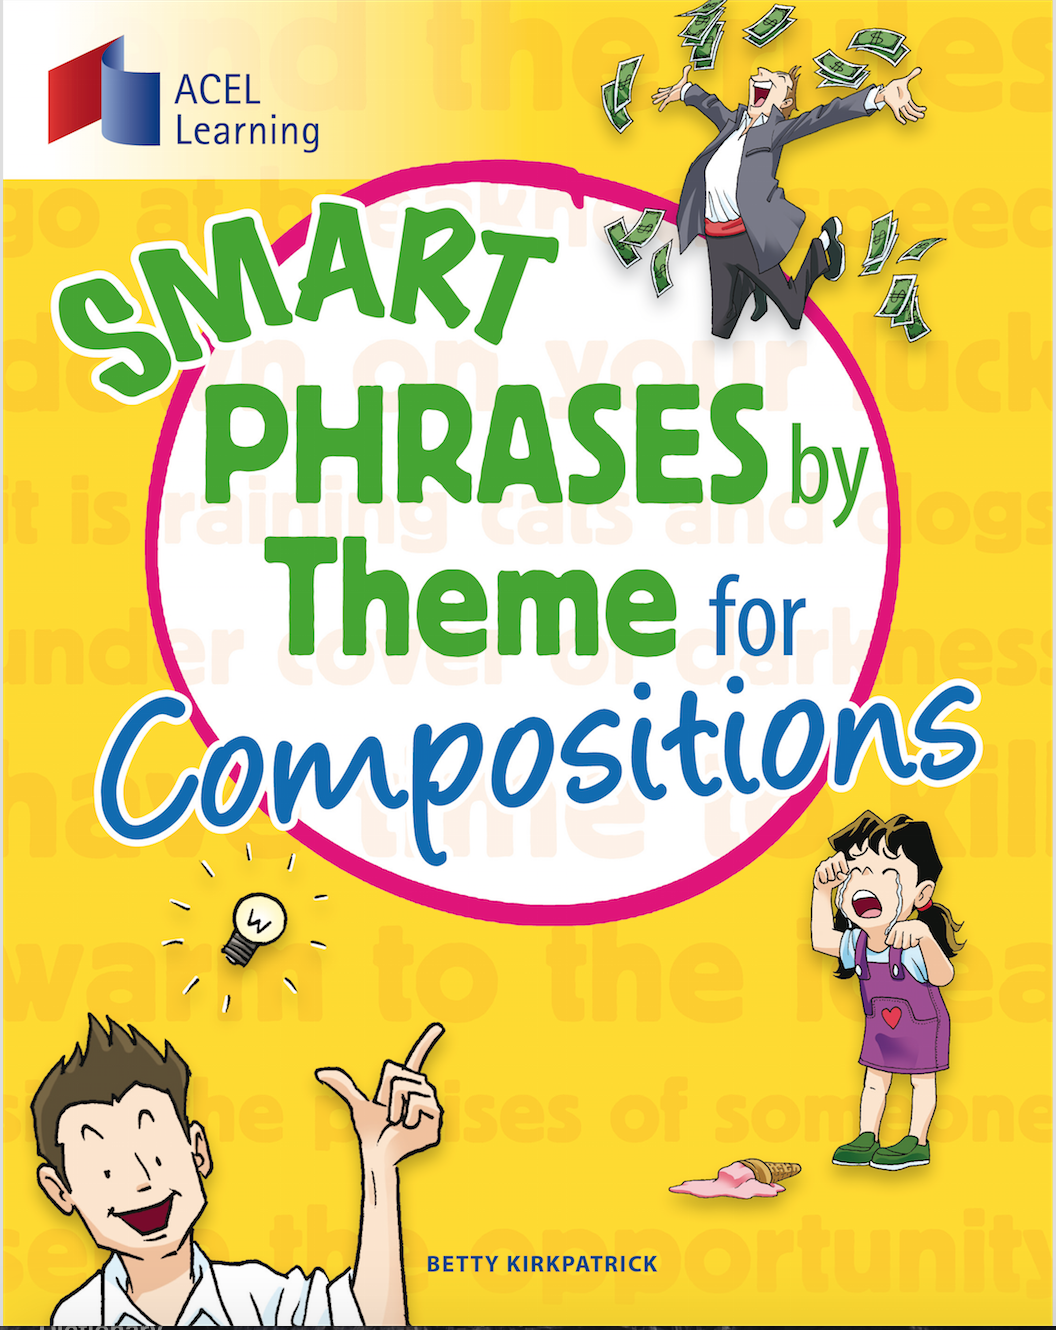 Smart Phrases by Theme for Compositions